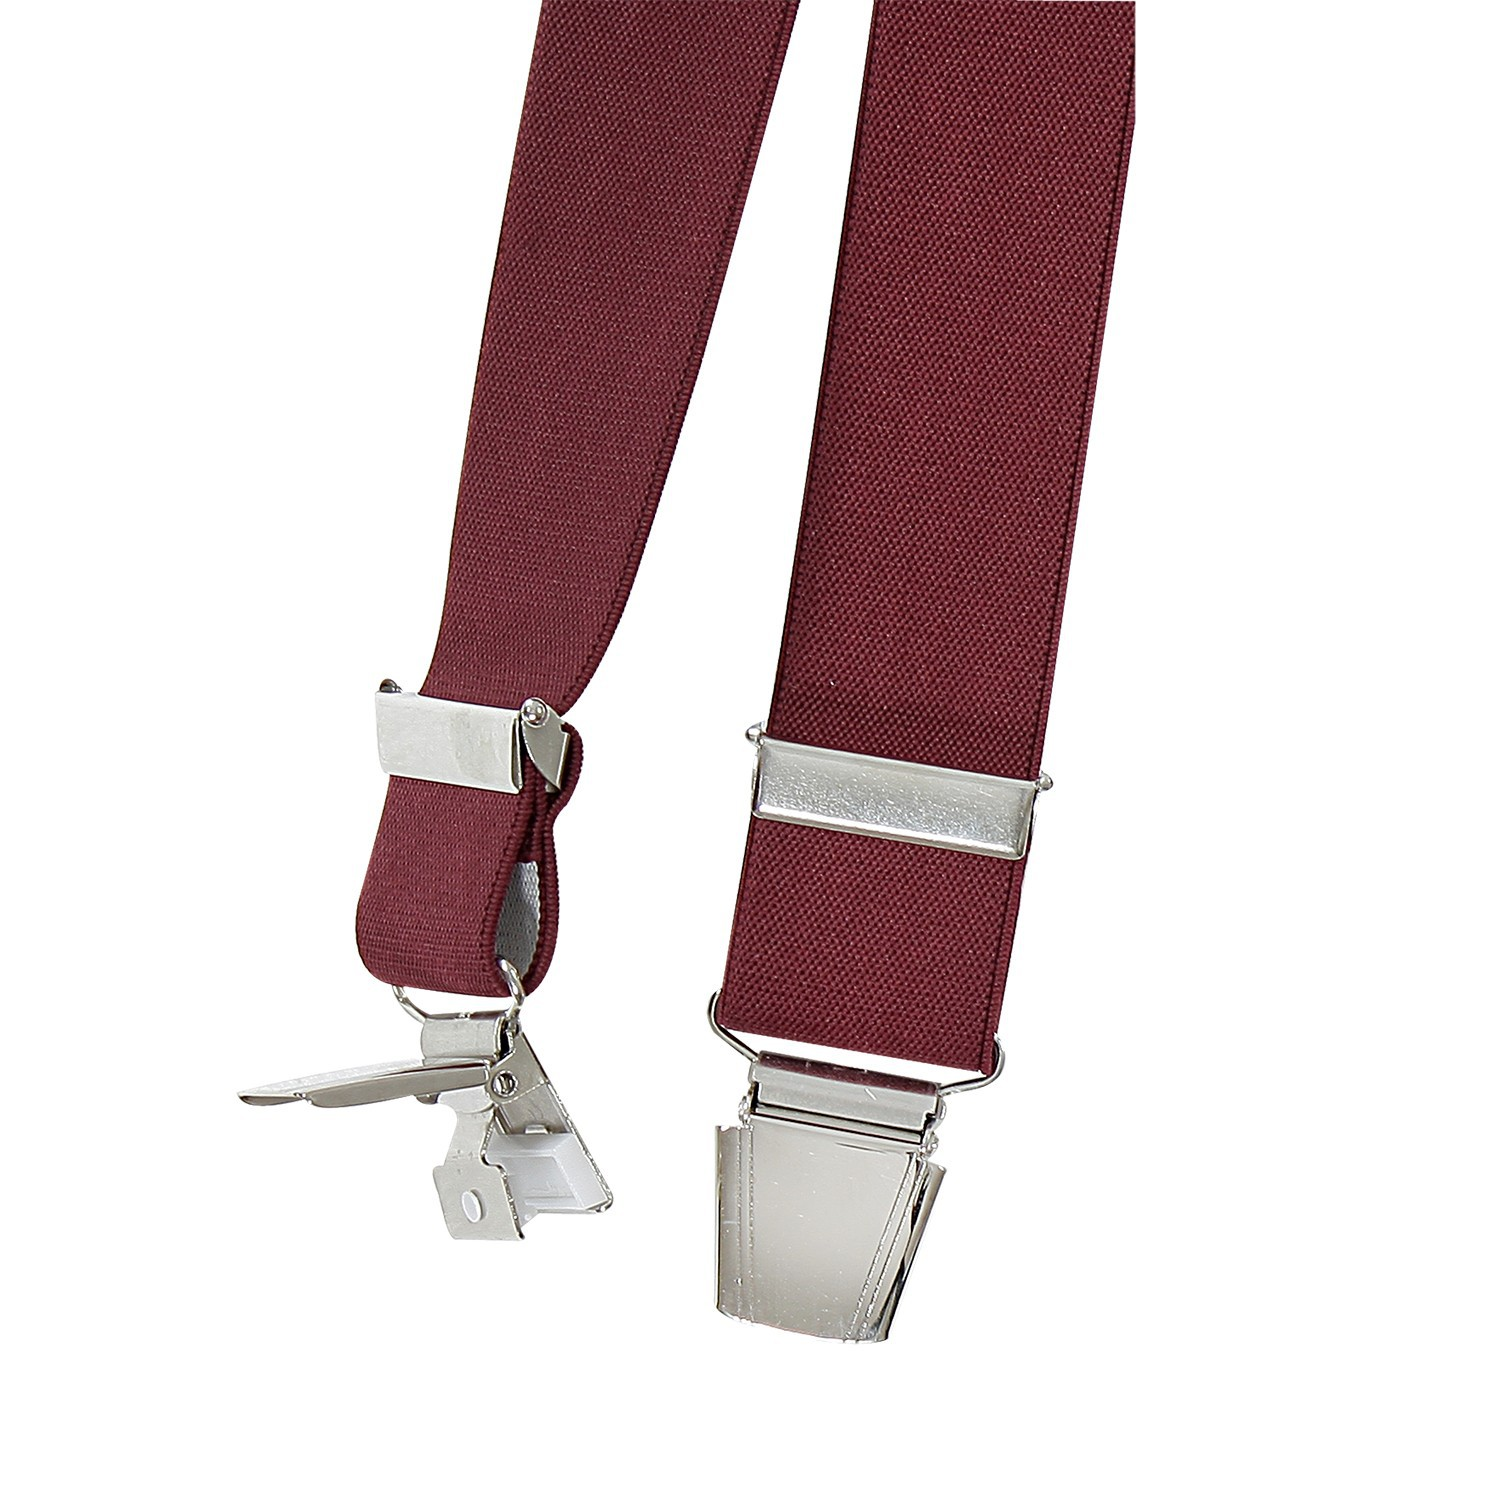 Detail Image to Braces in red with reinforced clips, extra wide and over length by Lindenmann